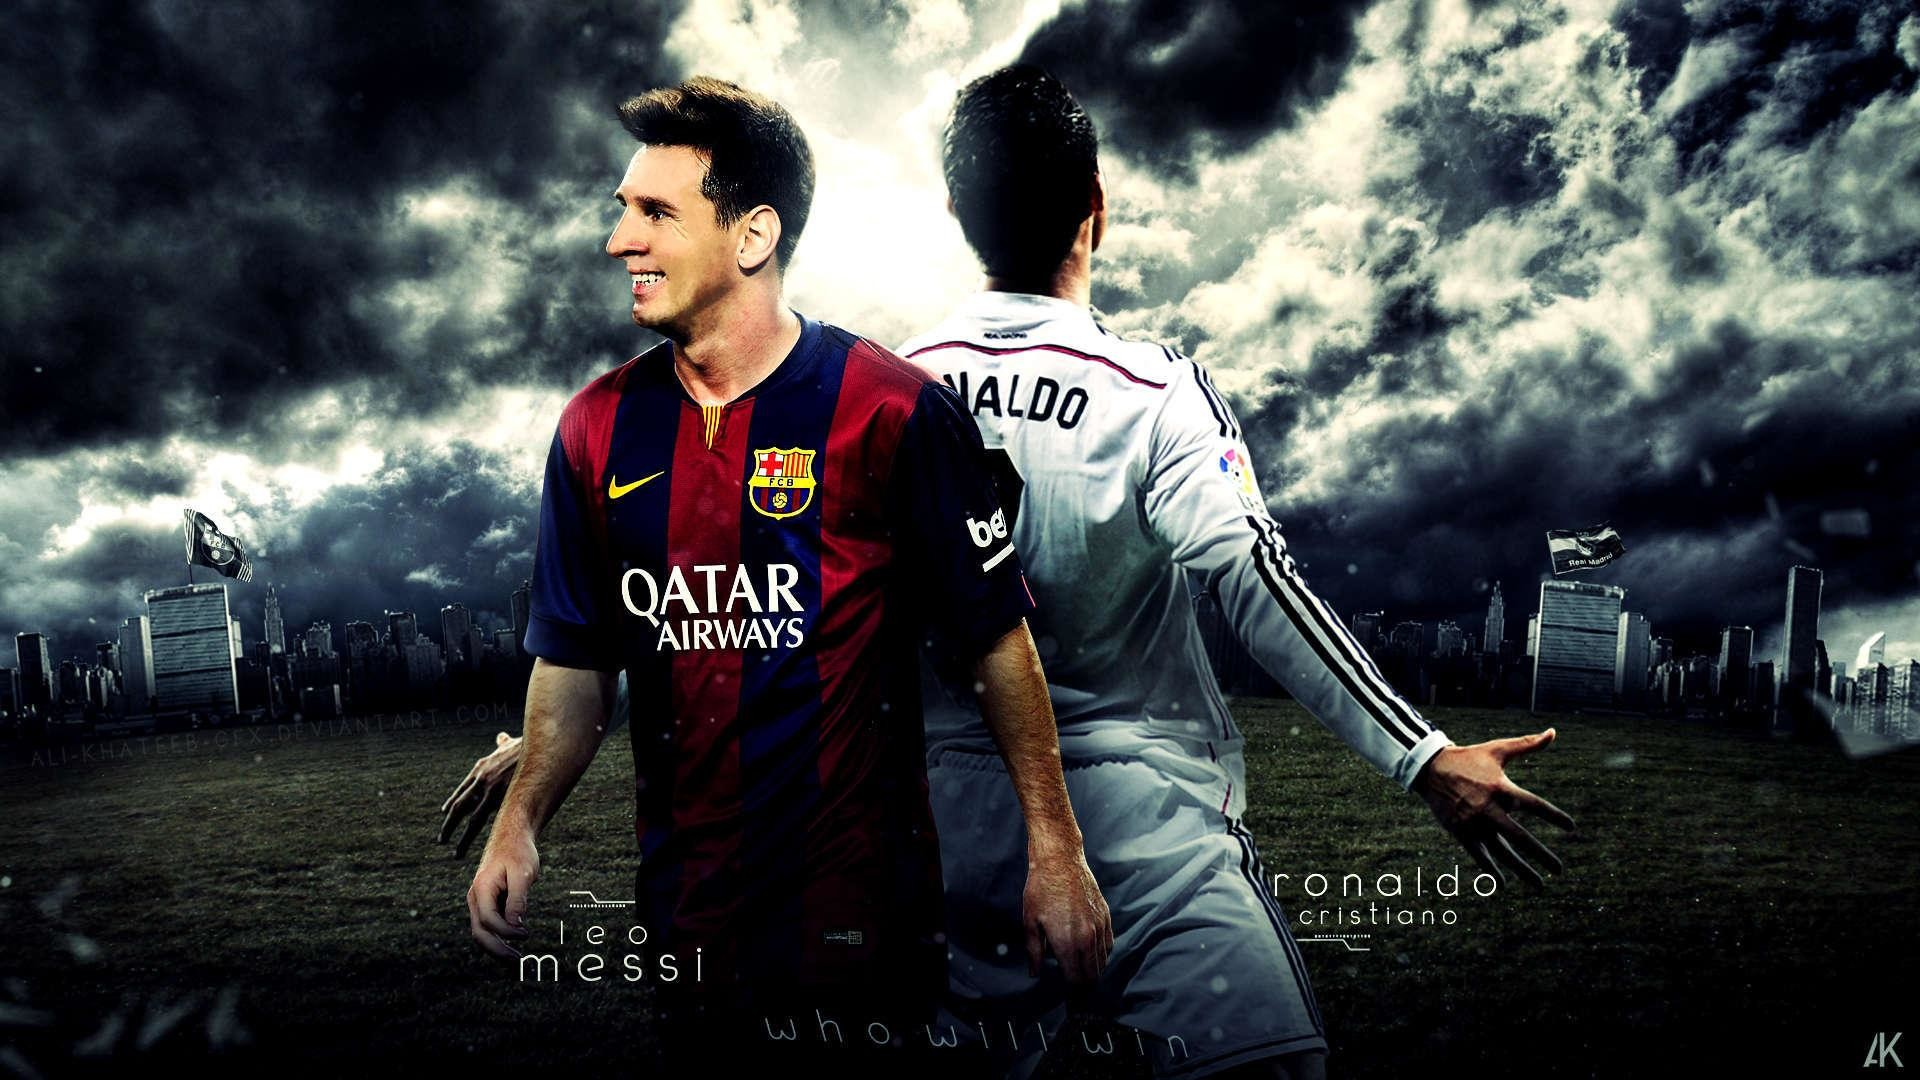 1920x1080 Messi Vs Ronaldo Wallpapers 2016 | amxxcs.ru